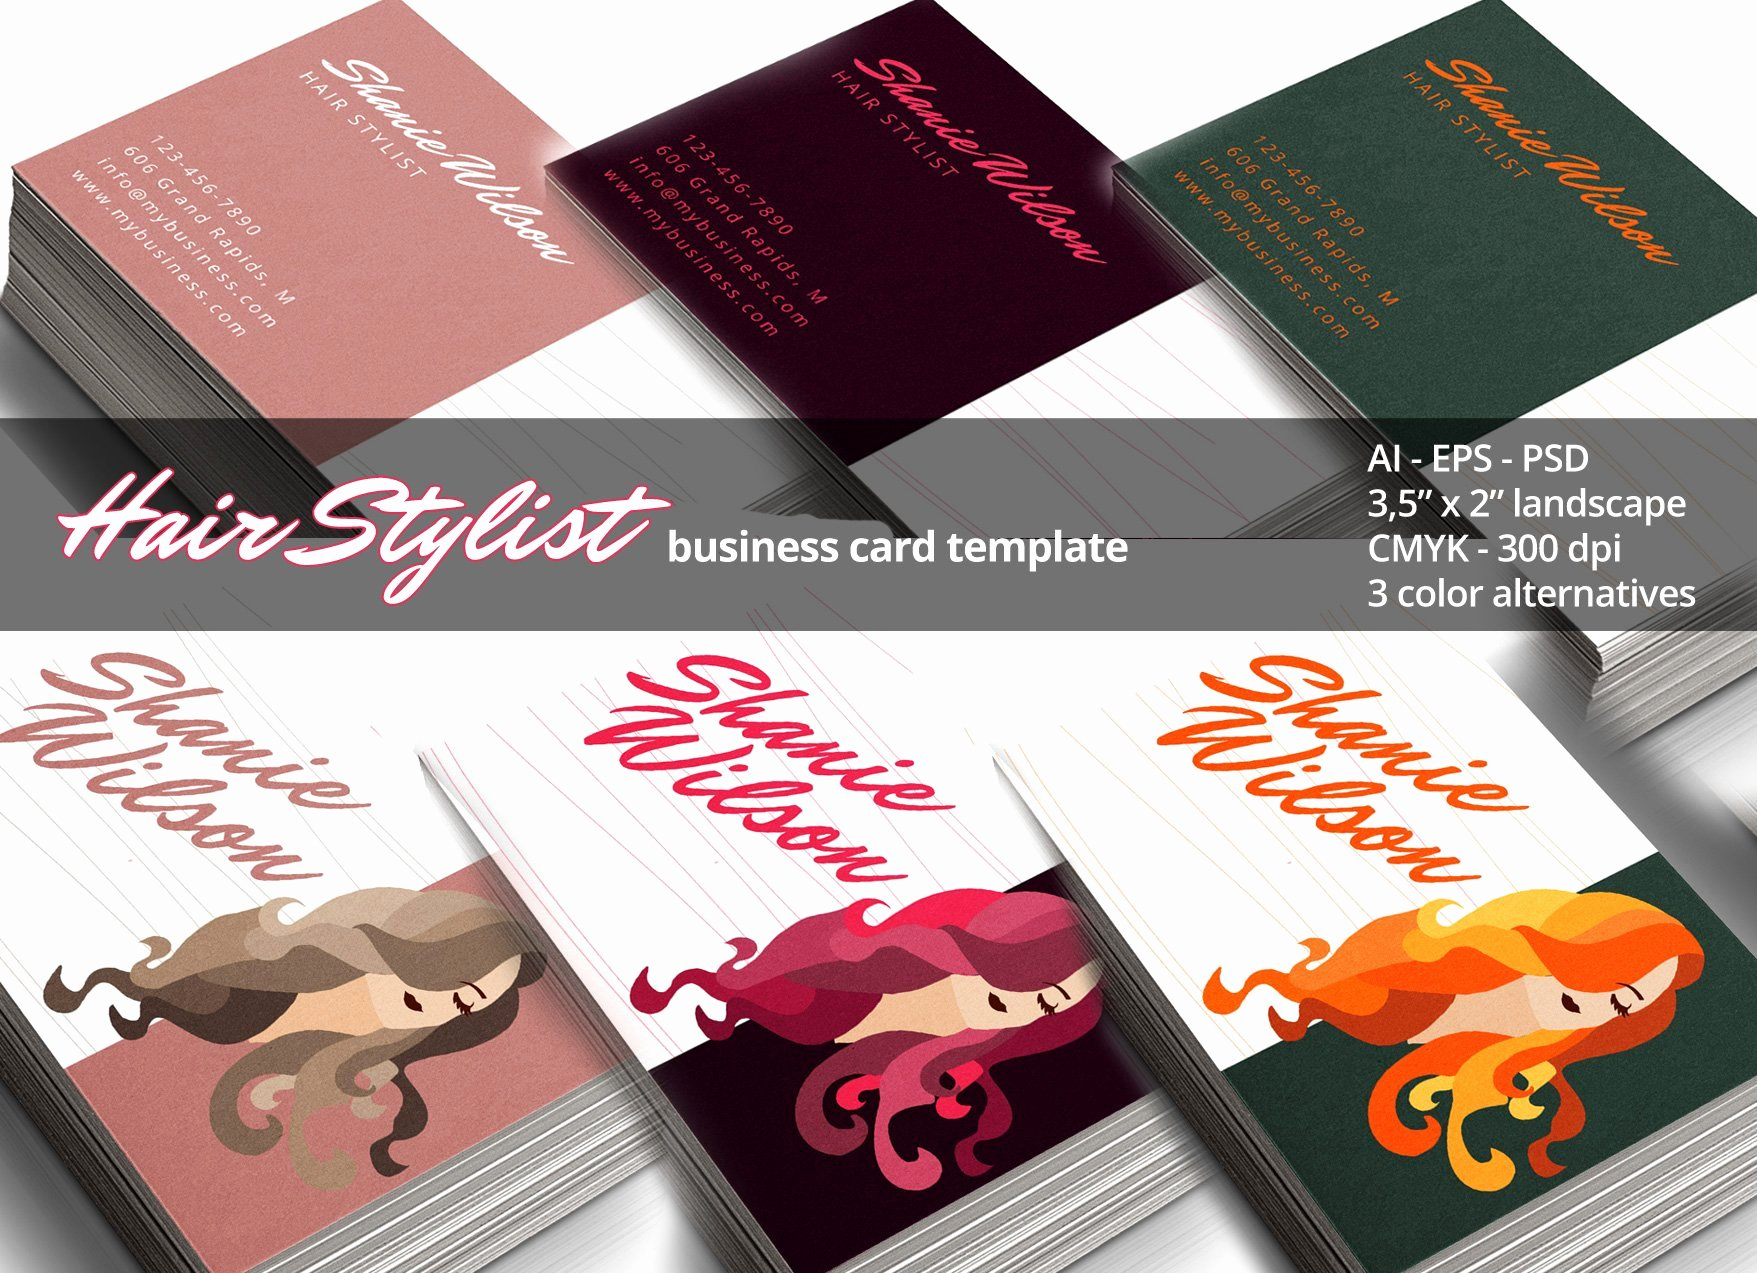 Hair Stylist Business Cards Unique Hair Stylist Business Card Business Card Templates Creative Market